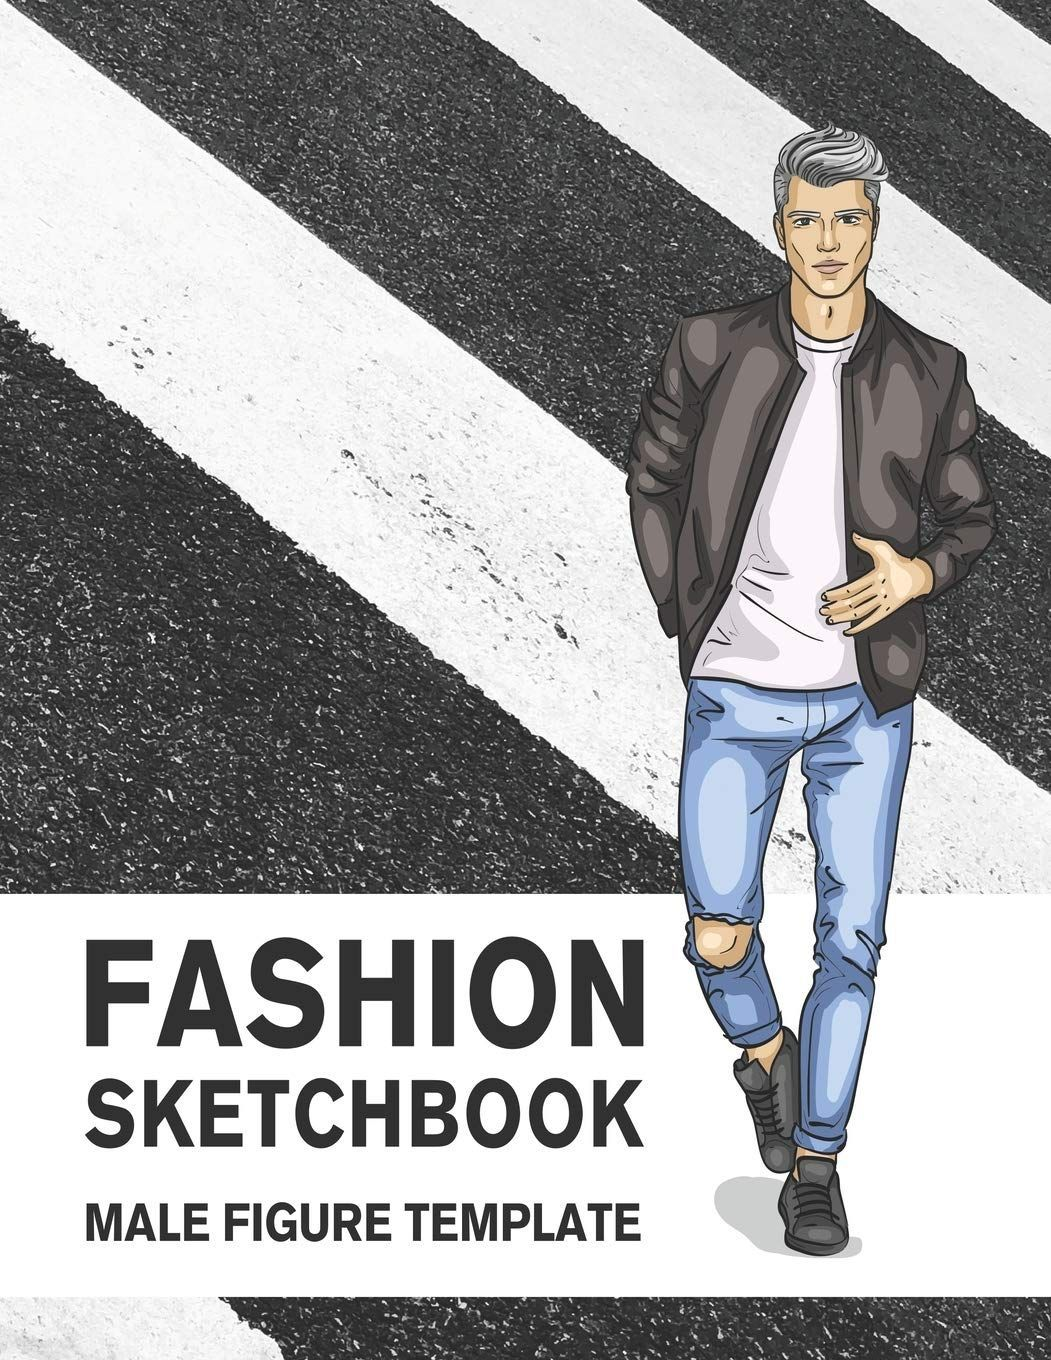 Fashion Sketchbook Male Figure Template: 440 Large Croquis for Easily Sketching ... -  Fashion Sketchbook Male Figure Template: 440 Large Croquis for Easily Sketching Your Fashion Design - #Croquis #Easily #Fashion #fashioneditorial #fashionideas #fashionshow #fashionsketchbook #figure #large #Male #Sketchbook #Sketching #Template